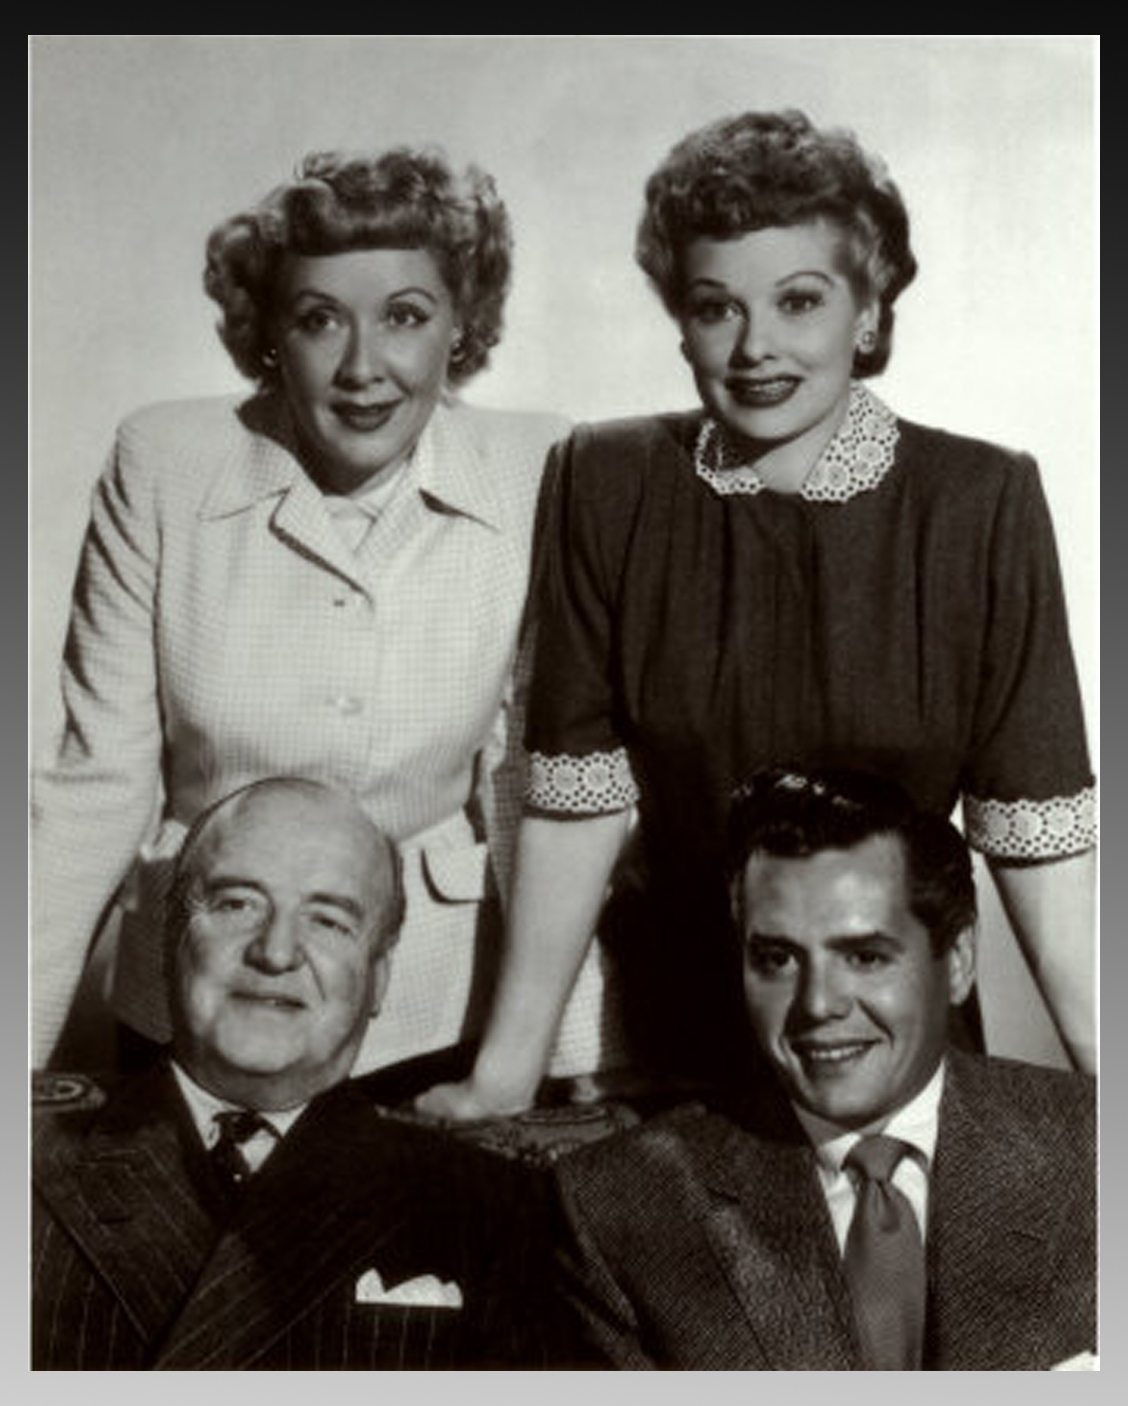 ALL GOOD THINGS: The Greatest TV Comedies - I LOVE LUCY ...